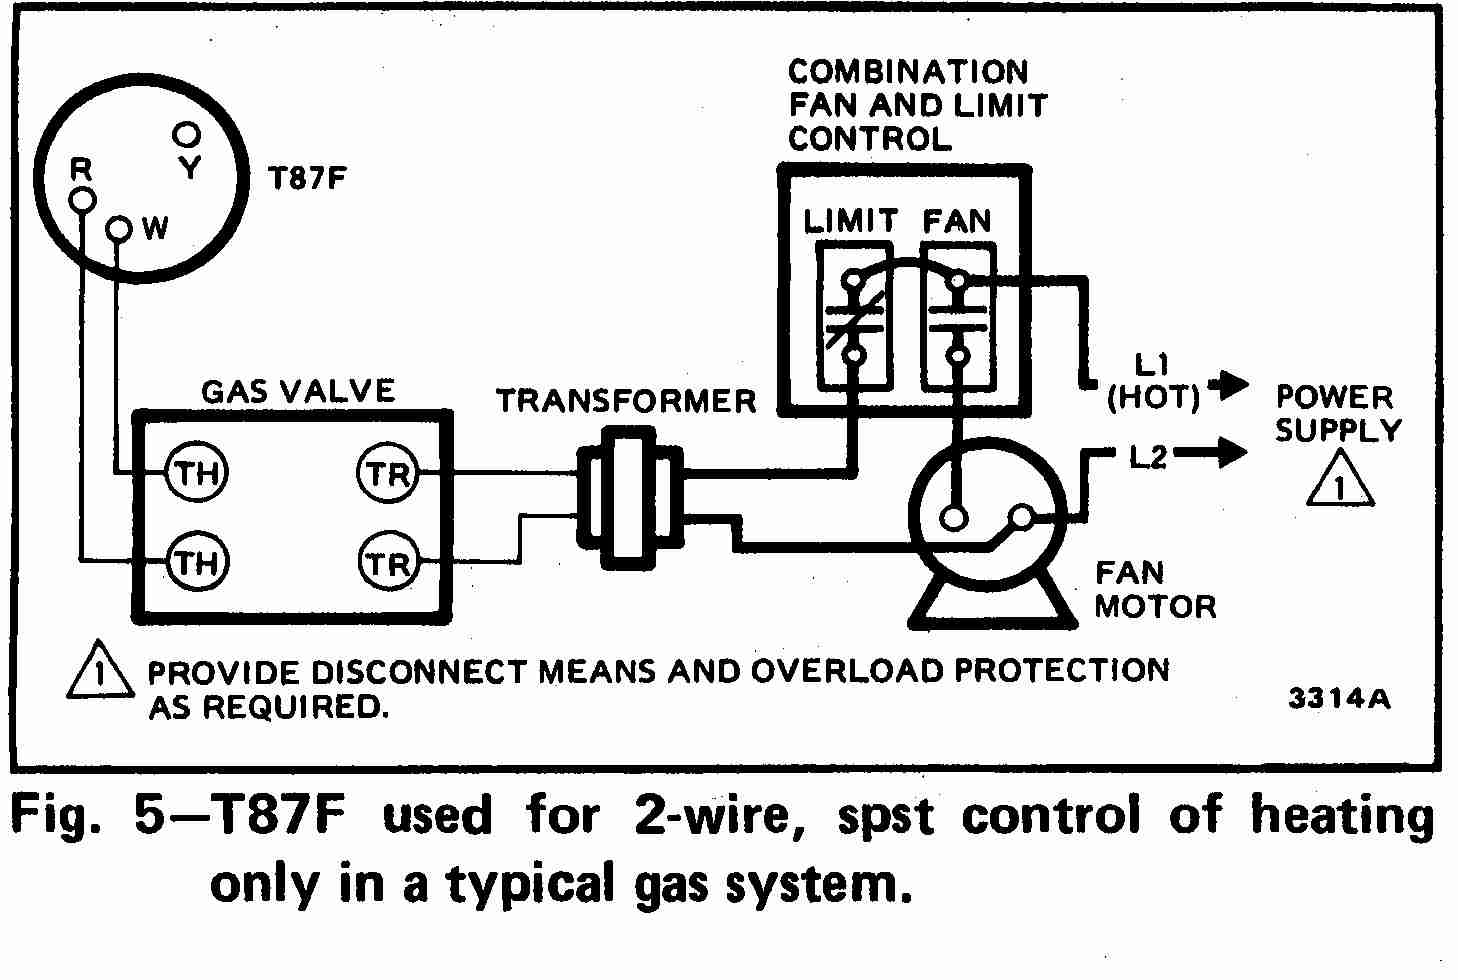 TT_T87F_0002_2Wg_DJF room thermostat wiring diagrams for hvac systems hvac wiring diagrams at readyjetset.co